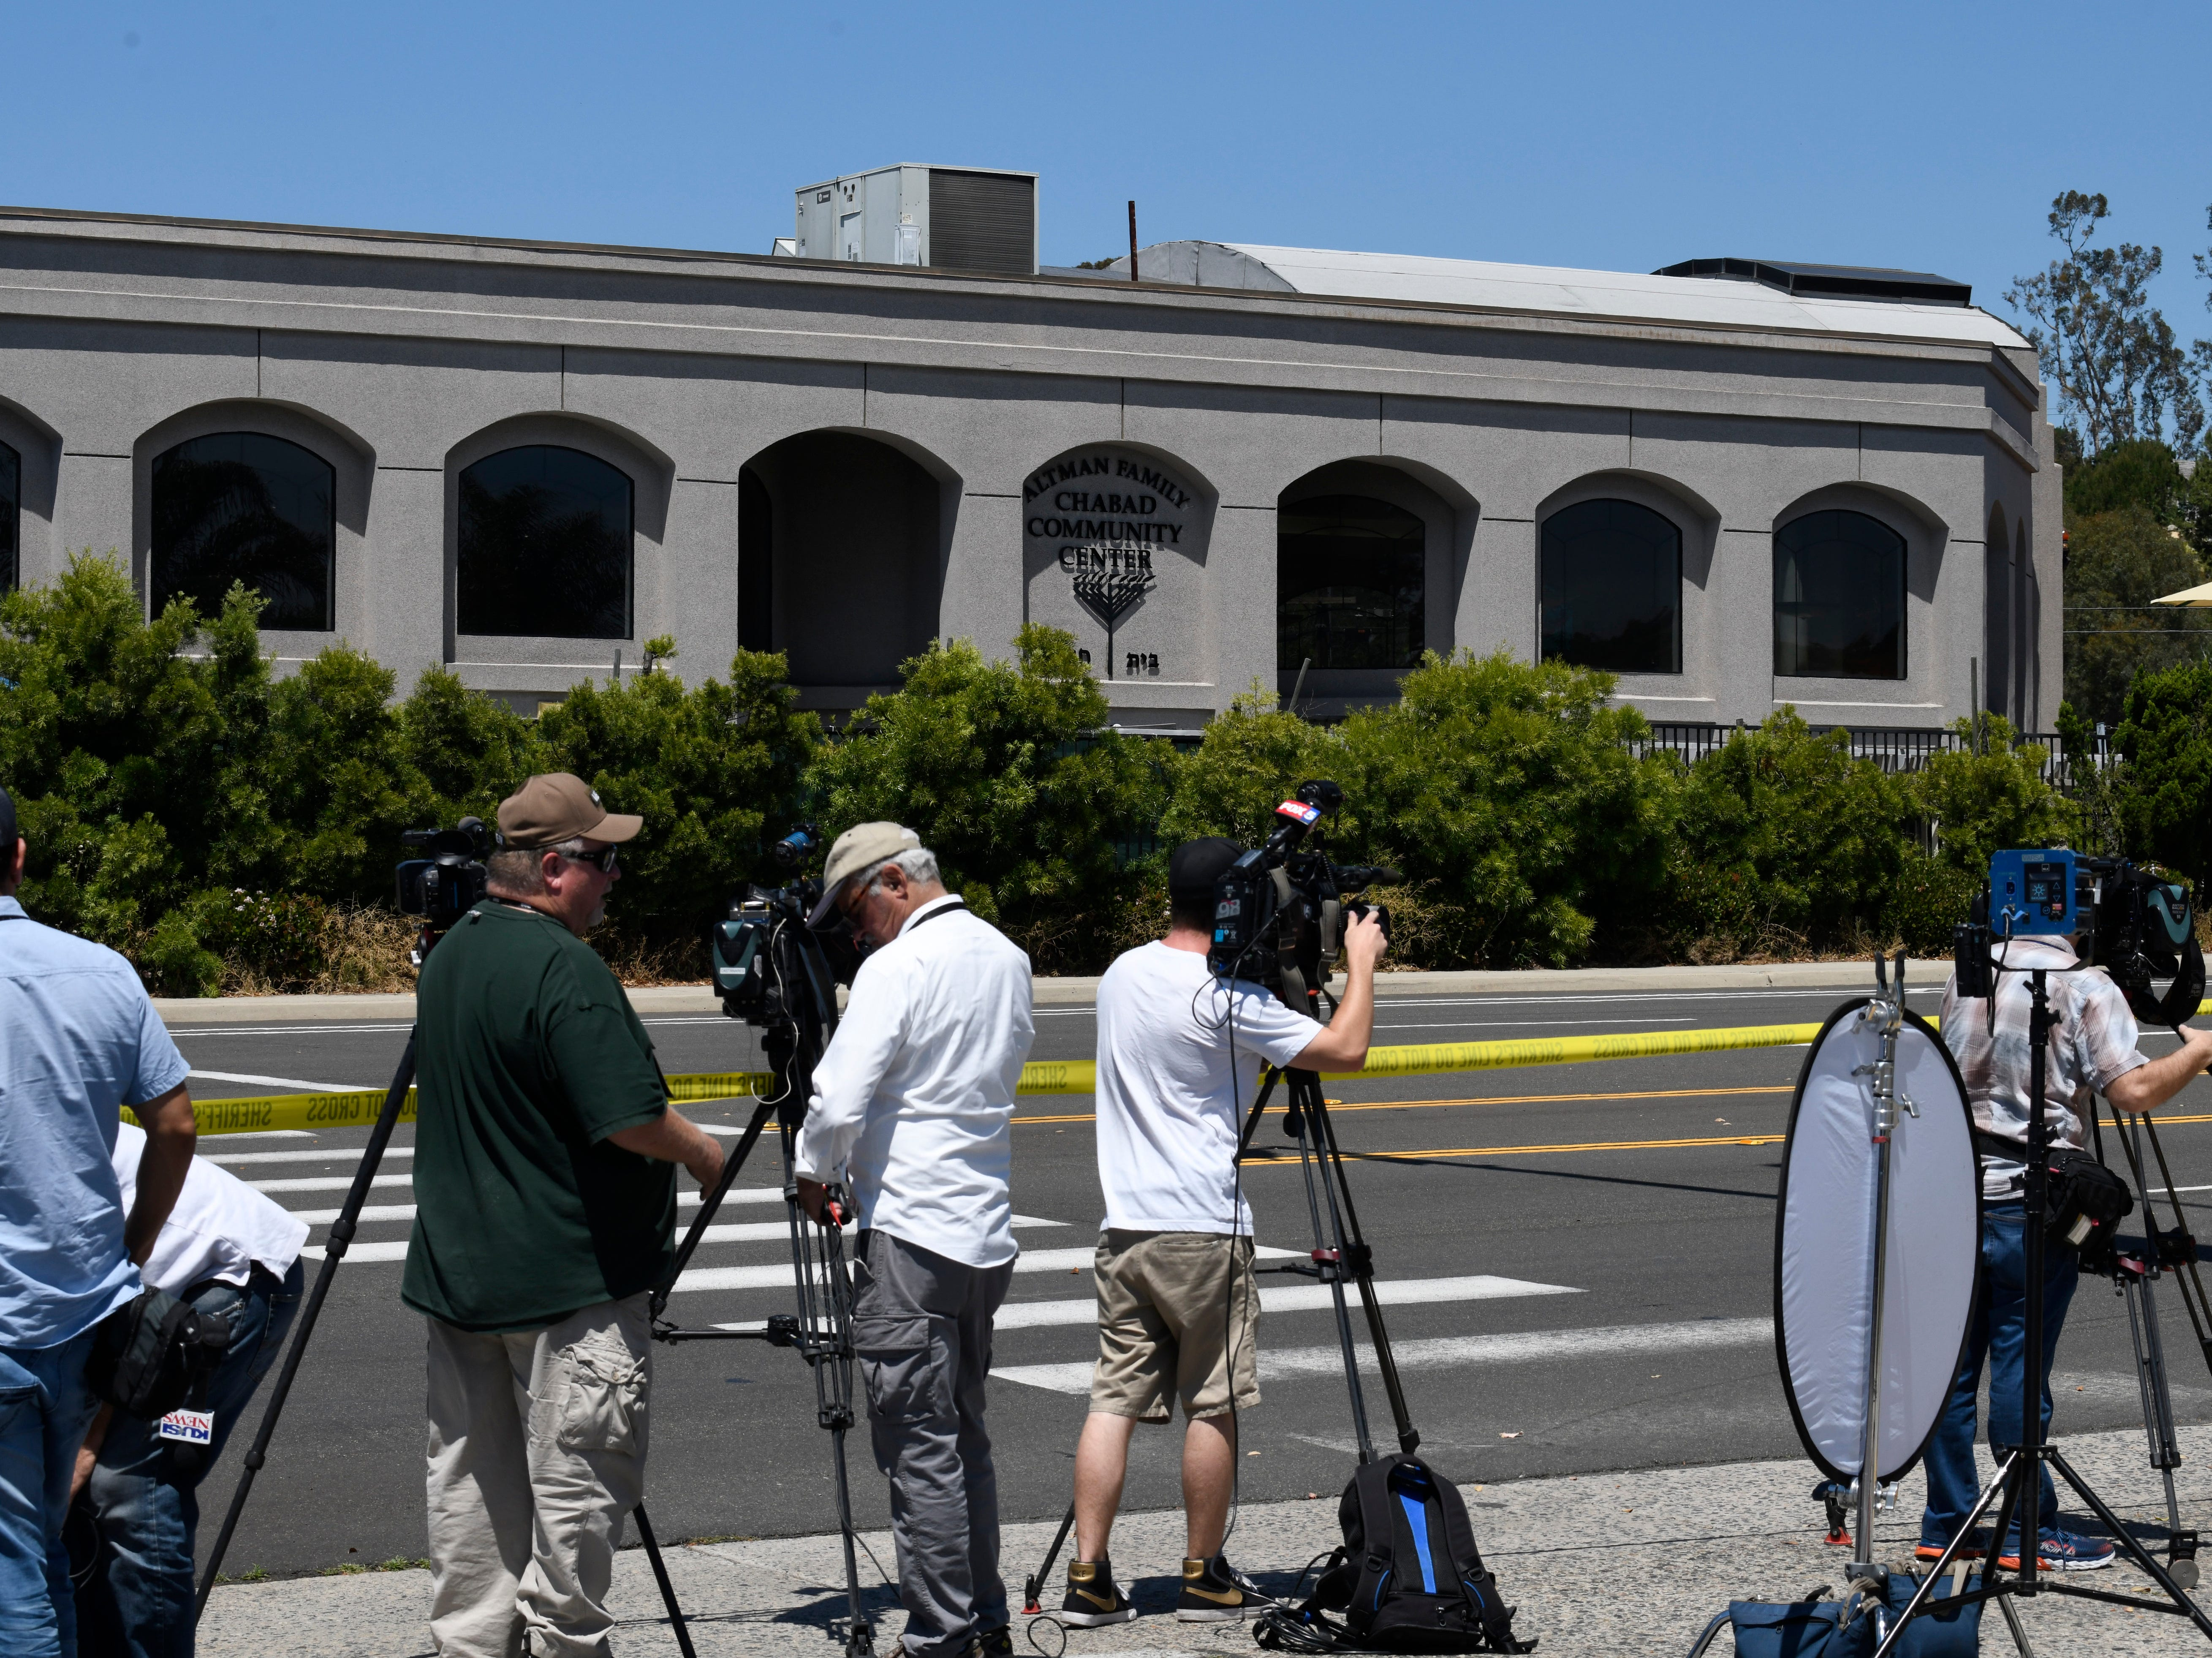 Television cameras film the outside of the Chabad of Poway Synagogue Saturday, April 27, 2019, in Poway, Calif.